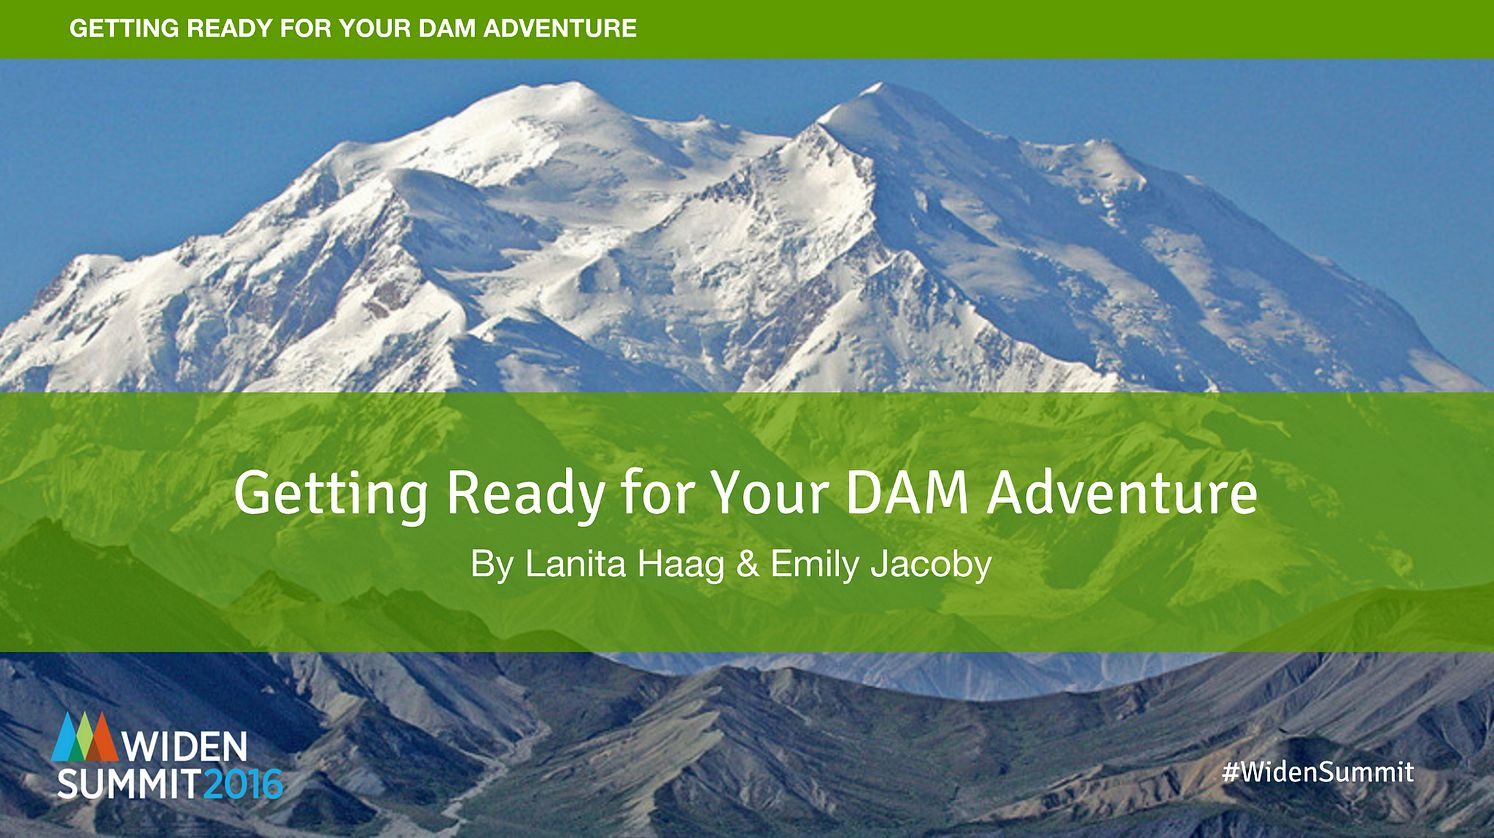 Preparing for DAM Content Marketing Hub Adventures